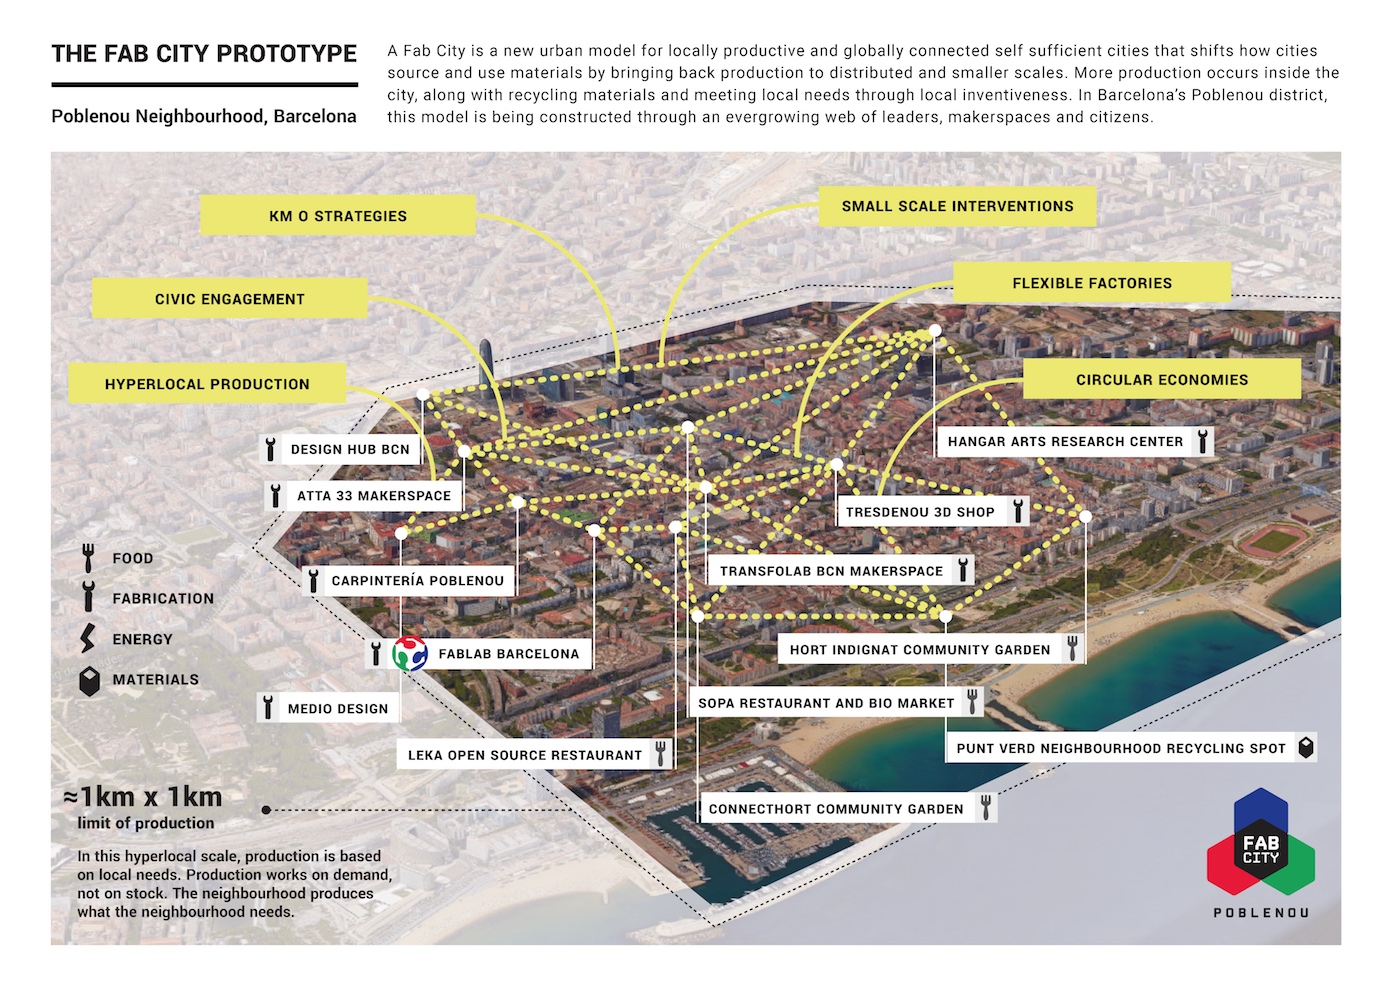 Poblenou mini Fab City map. Image via Fab.city